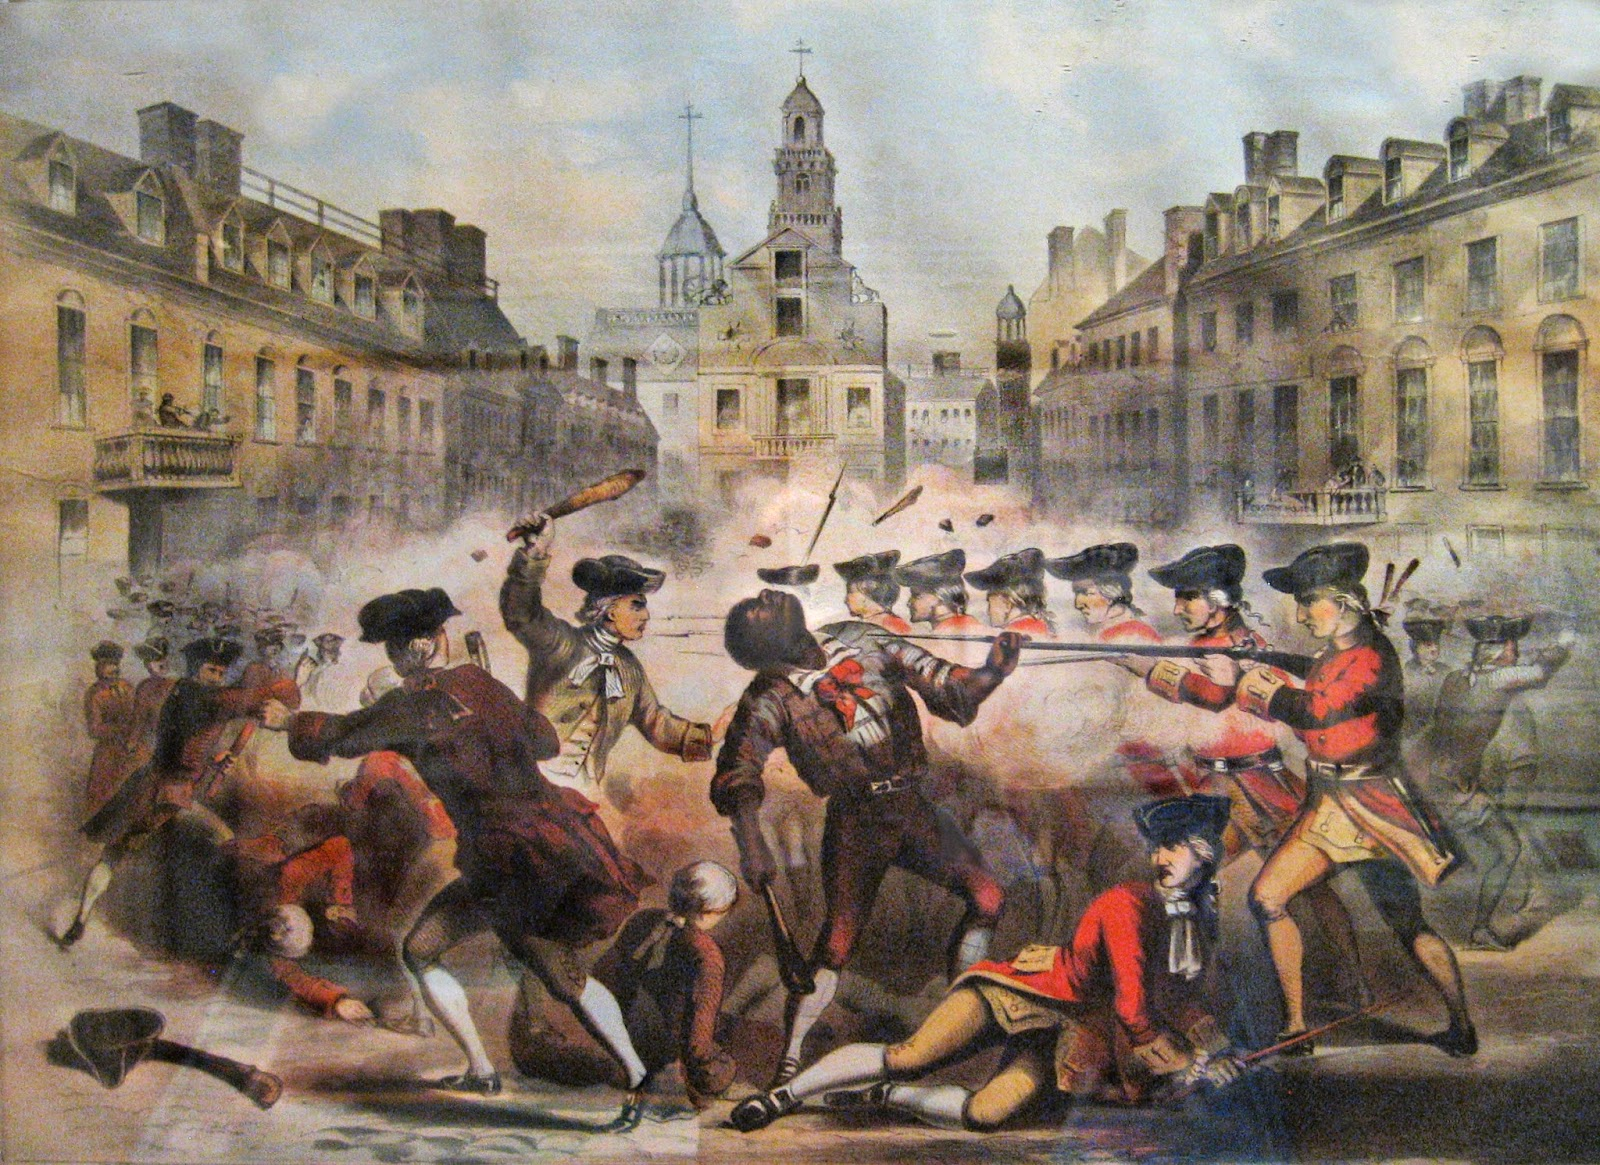 the role of the british soldiers in the boston massacre of 1770 By the beginning of 1770, there were 4,000 british soldiers in boston, a city with 15,000 inhabitants, and tensions were running high on the evening of march 5, crowds of day laborers, apprentices, and merchant sailors began to pelt british soldiers with snowballs and rocks.